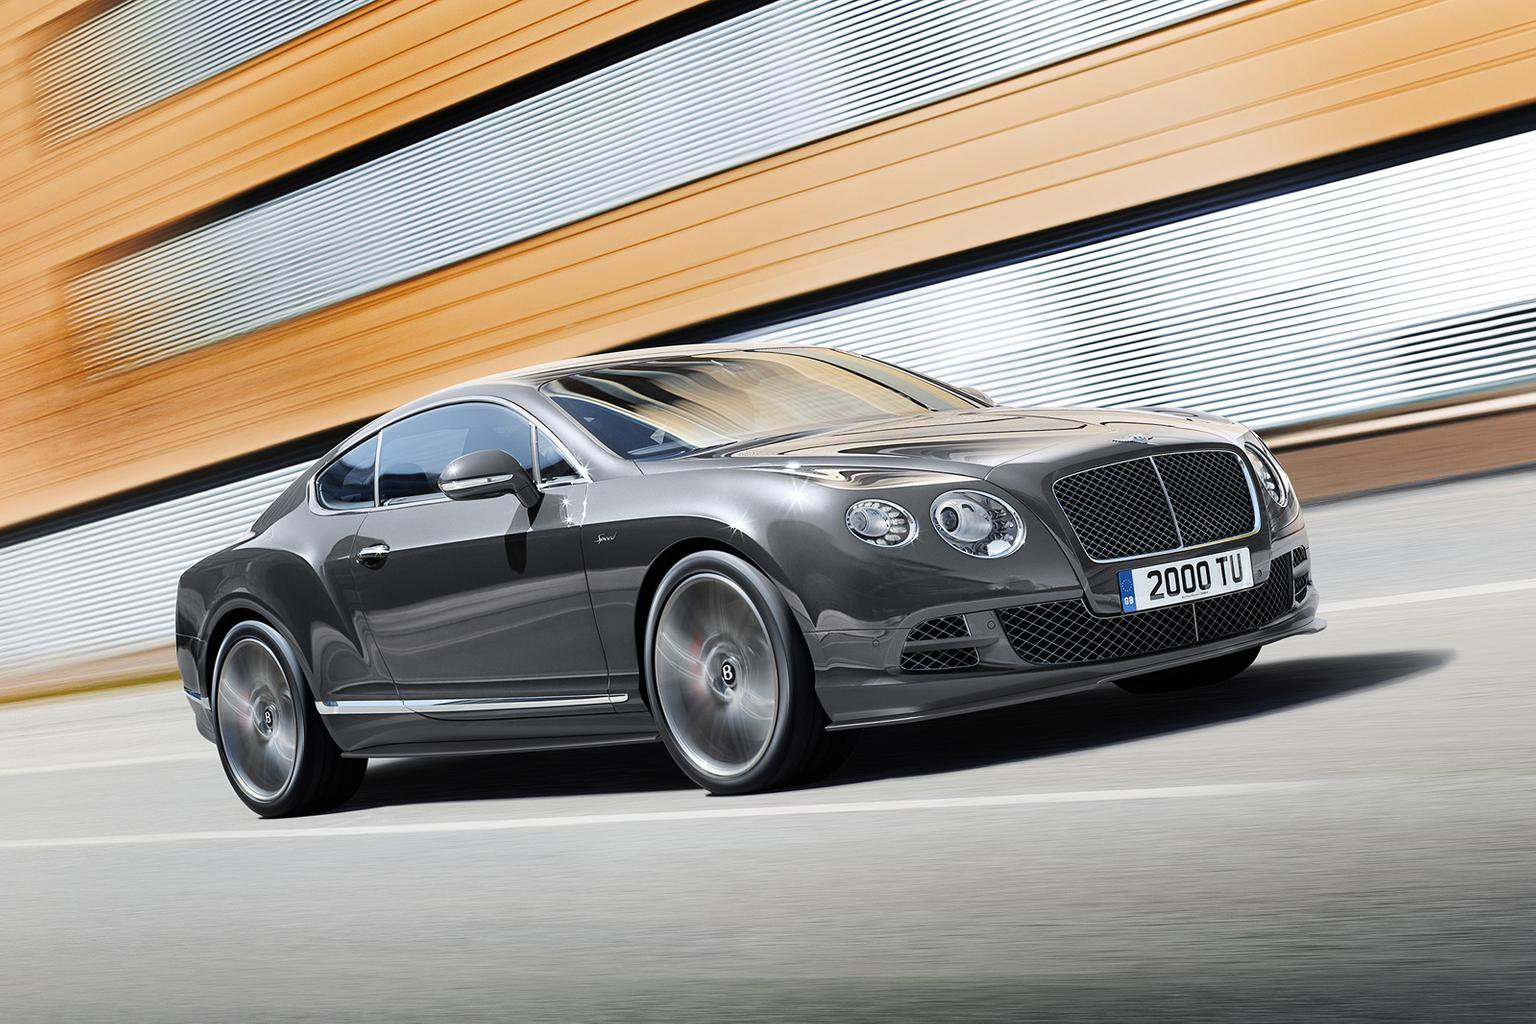 Bentley To Make All W12 Engines For Vw Group